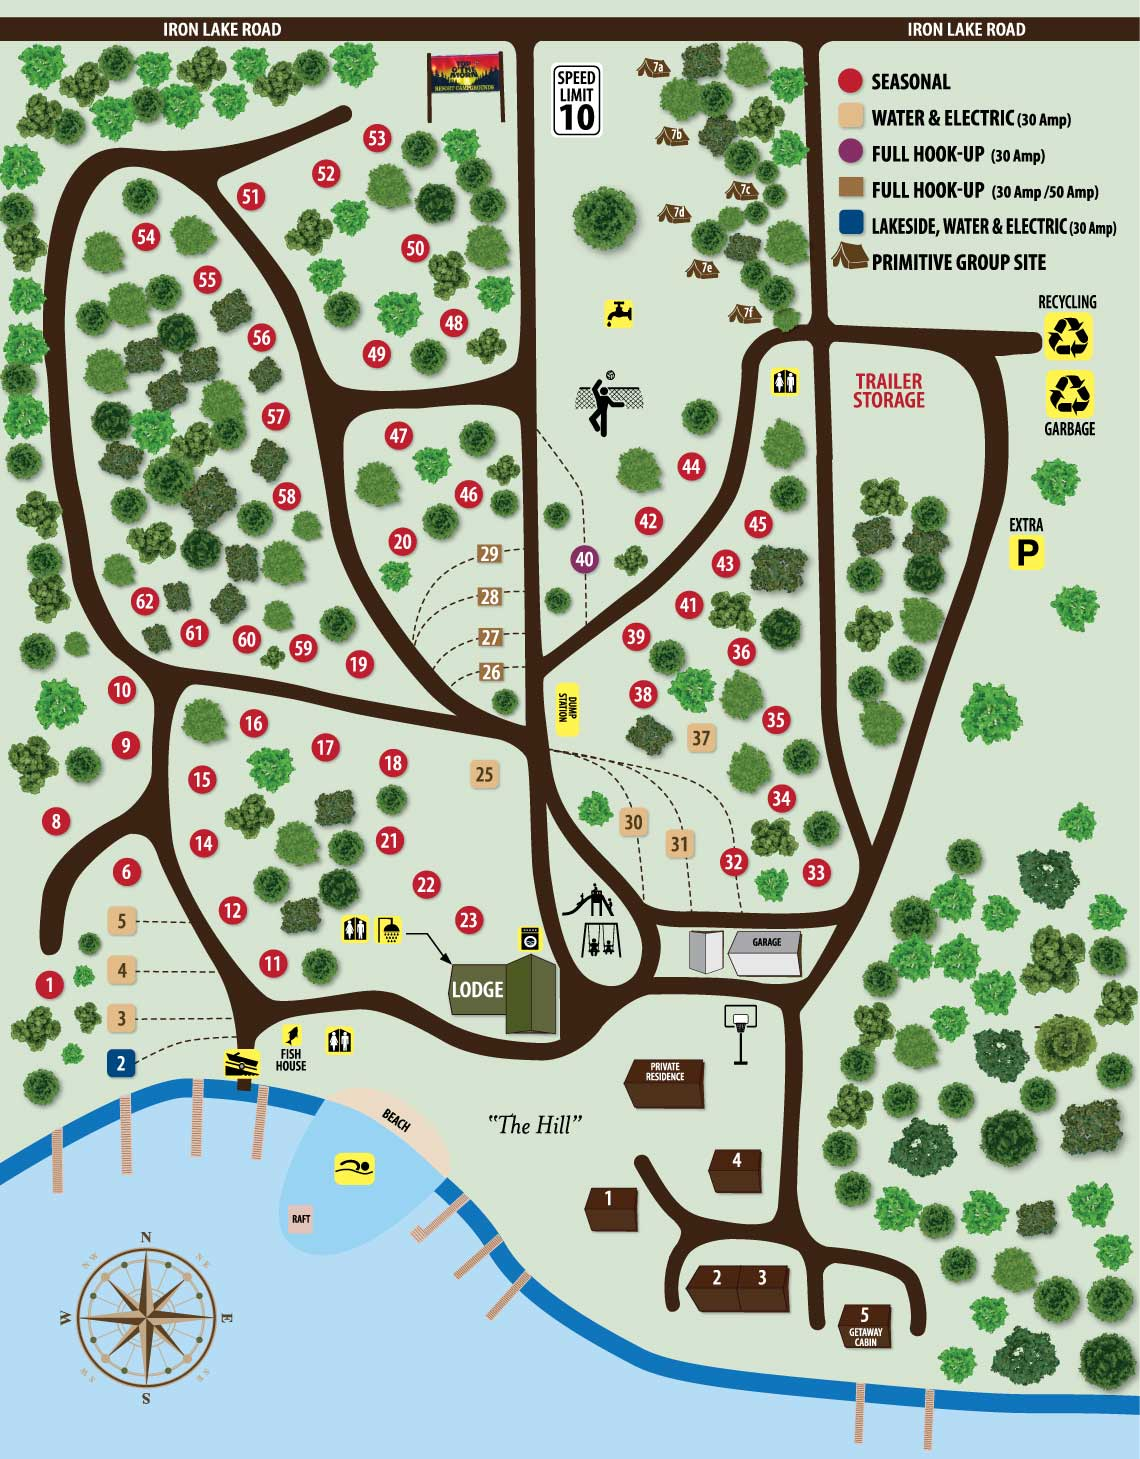 Top O' the Morn Campground Map